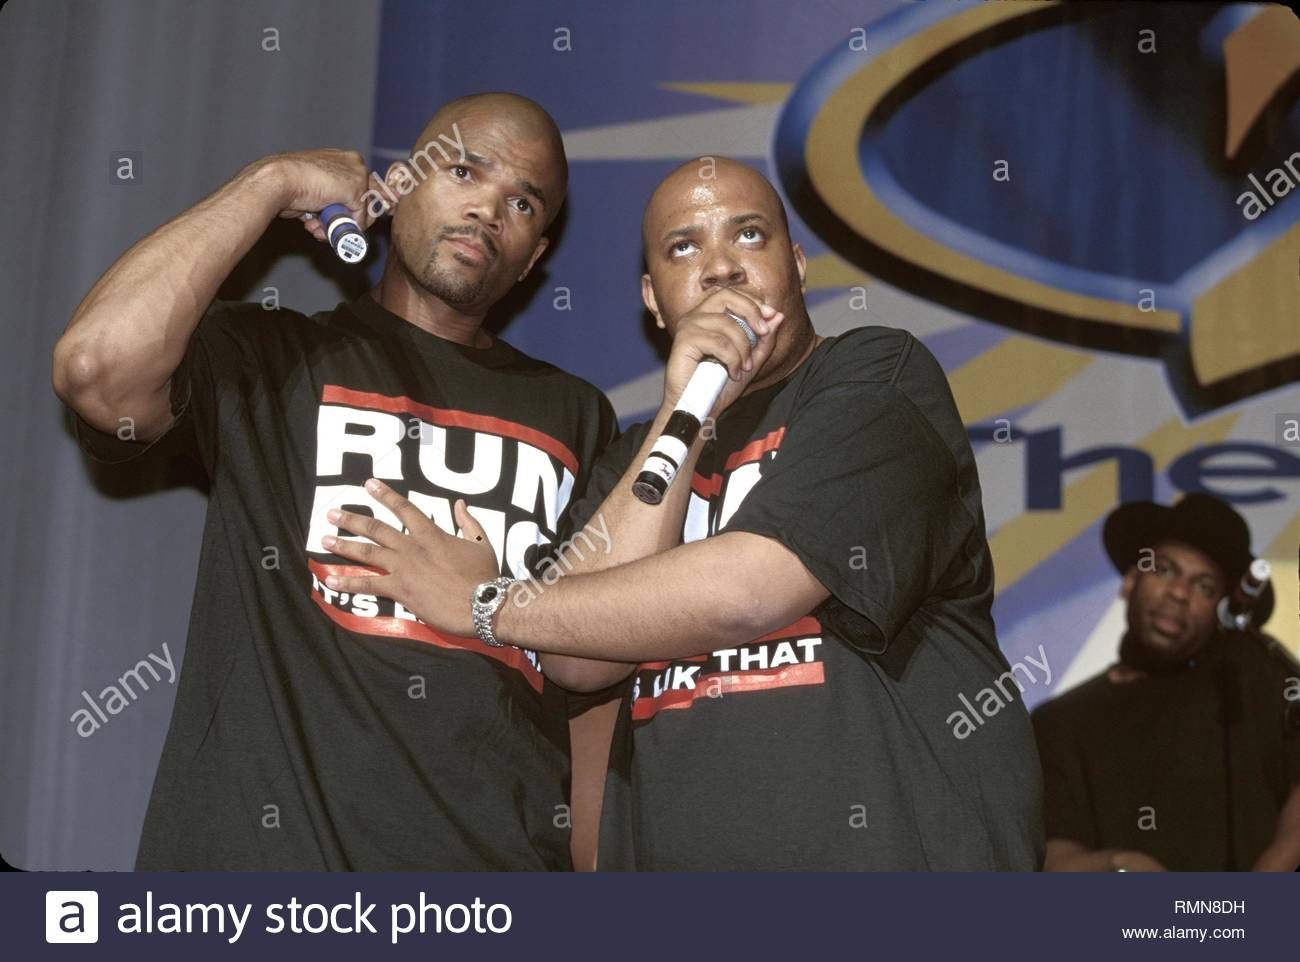 Run DMC.are shown performing on stage during a 'live' concert appearance. - Stock Image